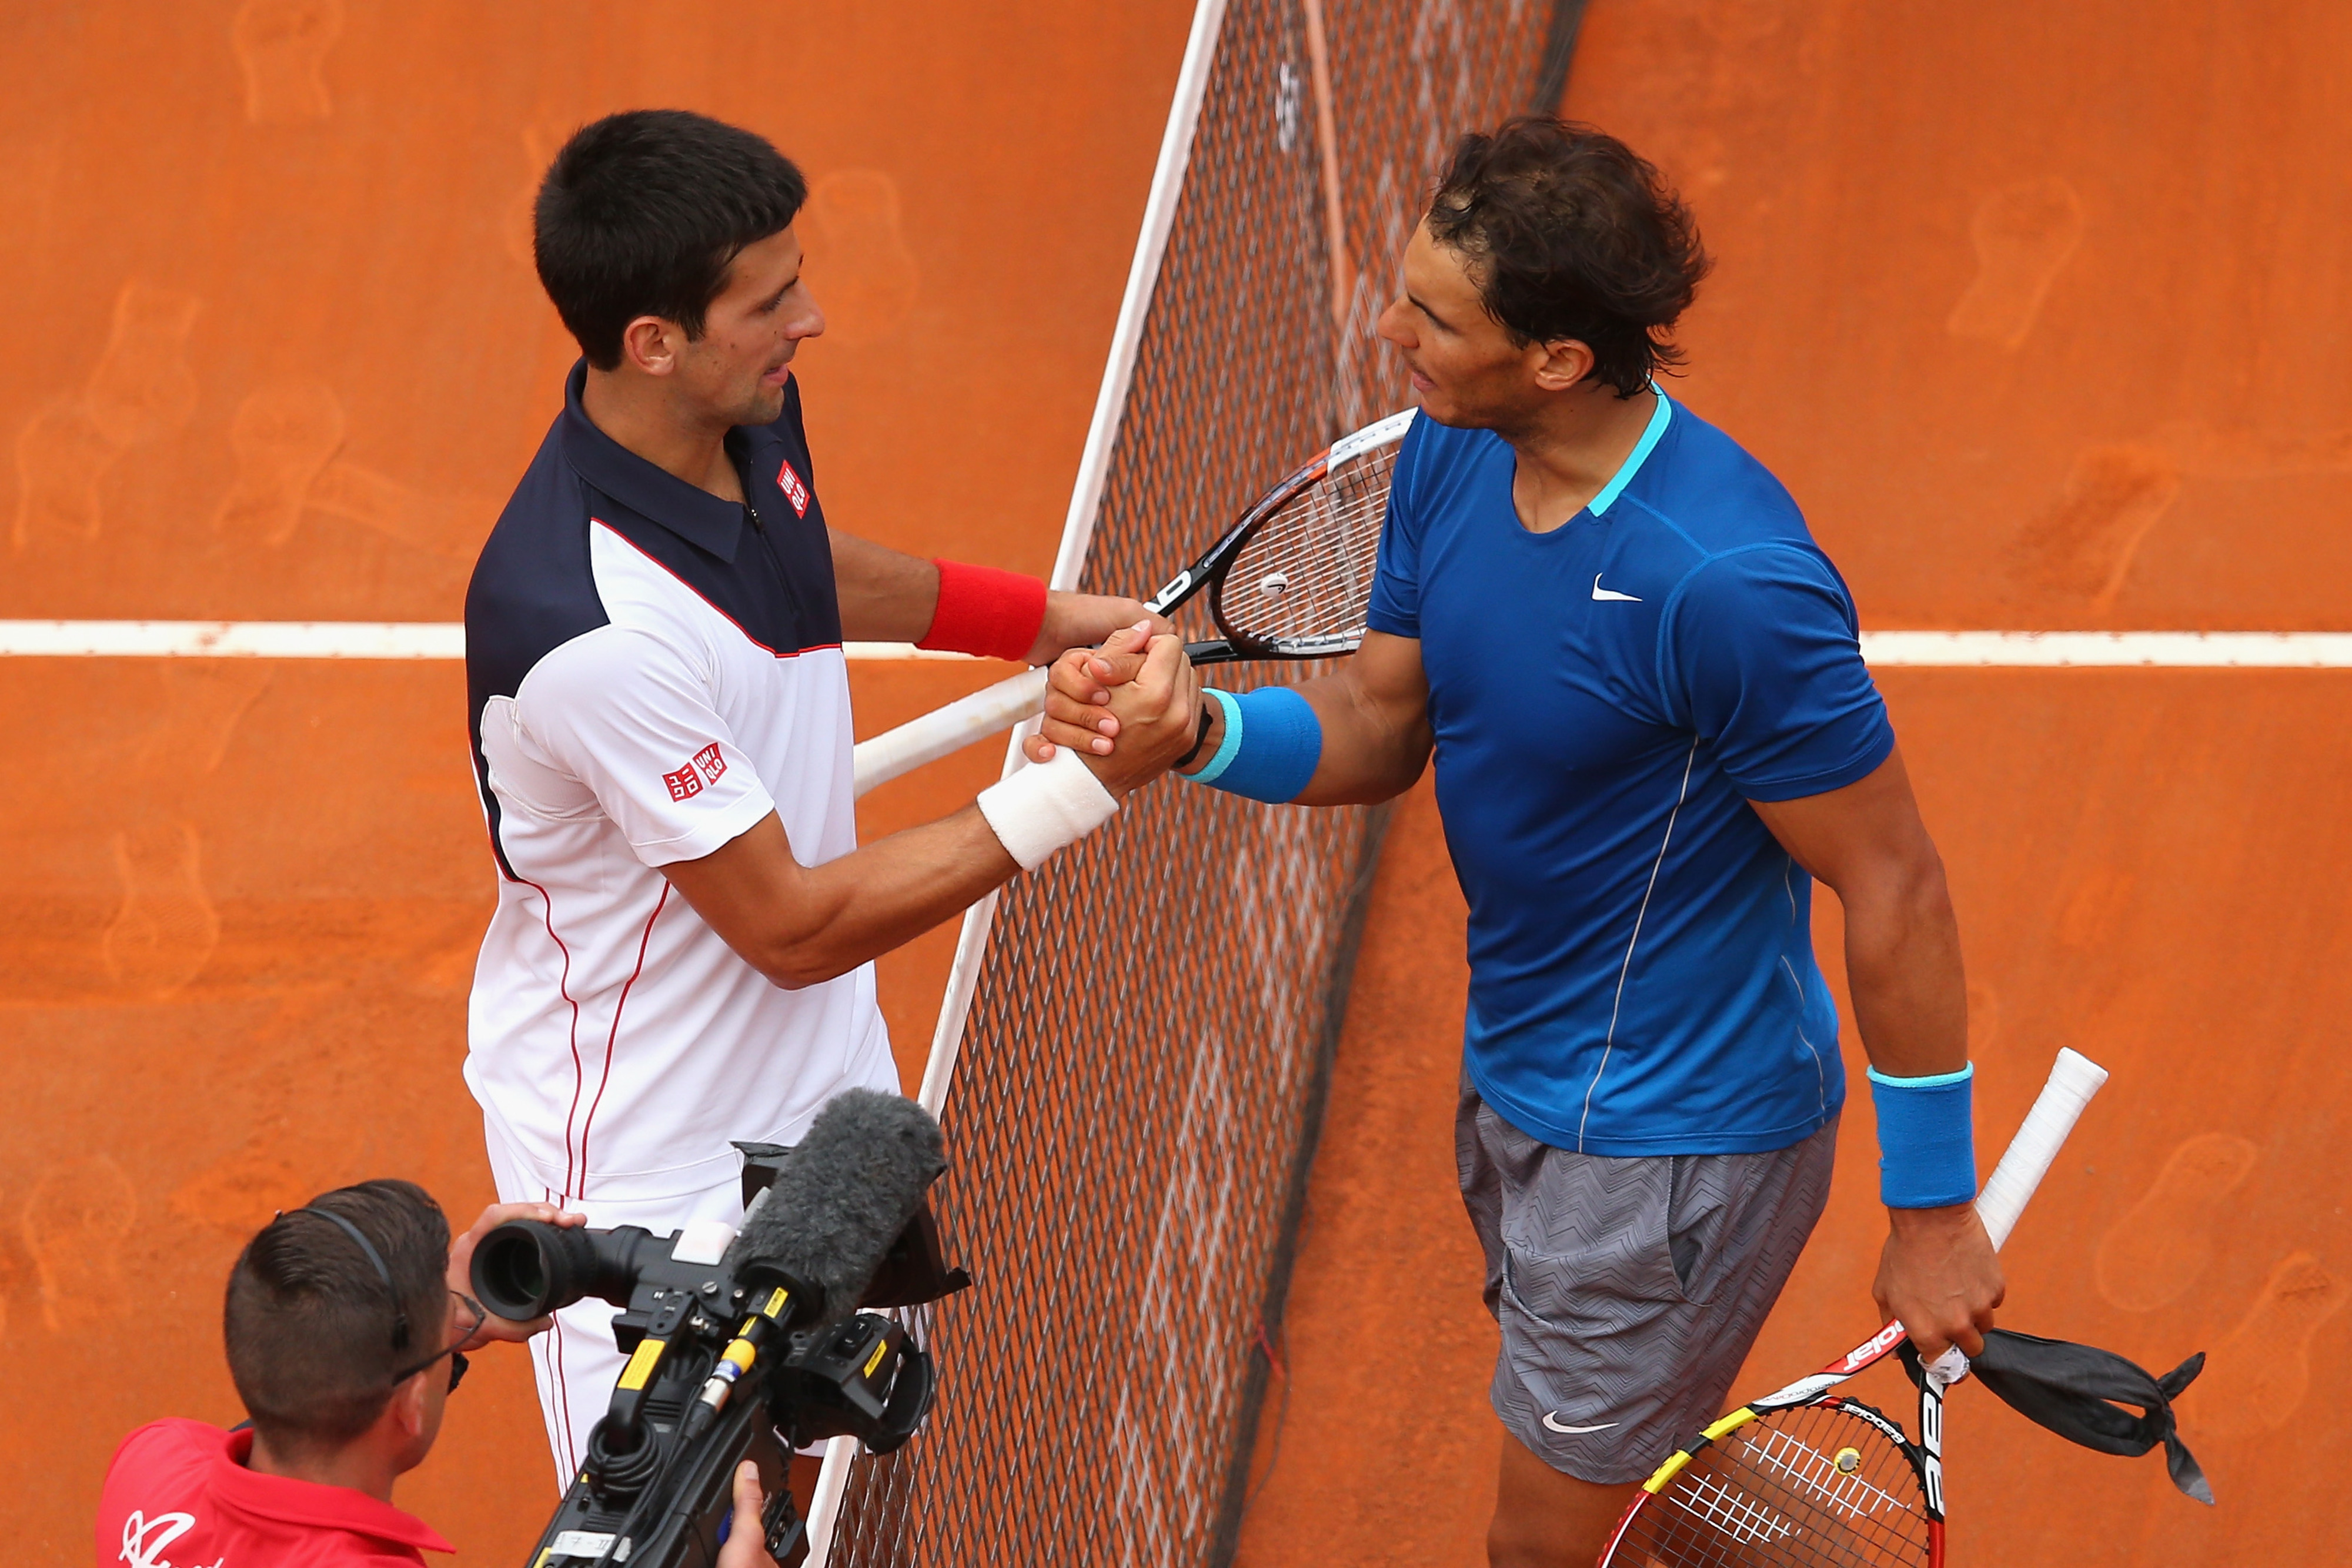 French Open draw 2014 announced: Nadal, Djokovic set to meet in Roland Garros final